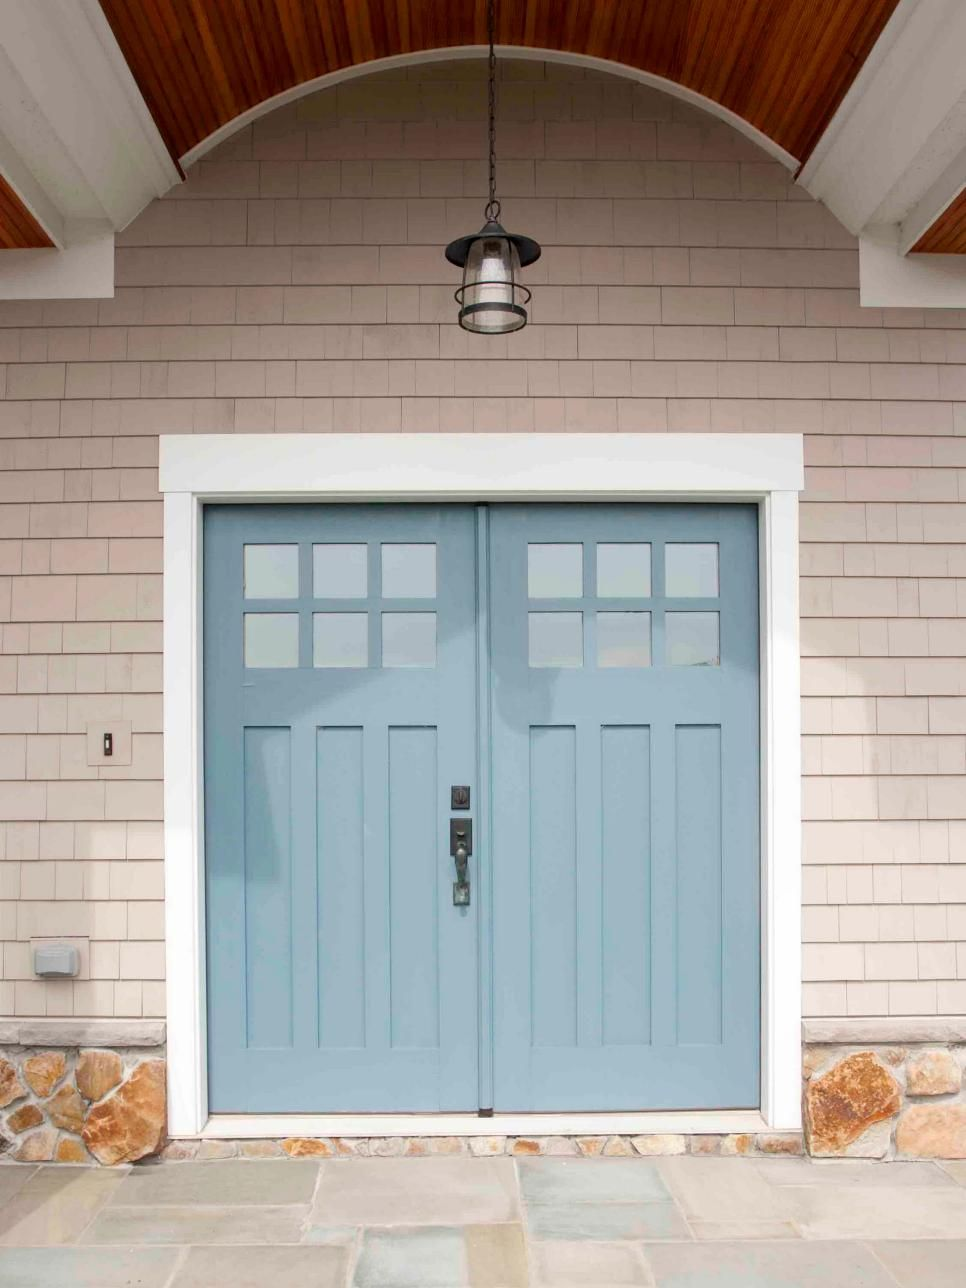 Popular Colors To Paint An Entry Door Paint Colors Design And Paint - Cool door painting ideas